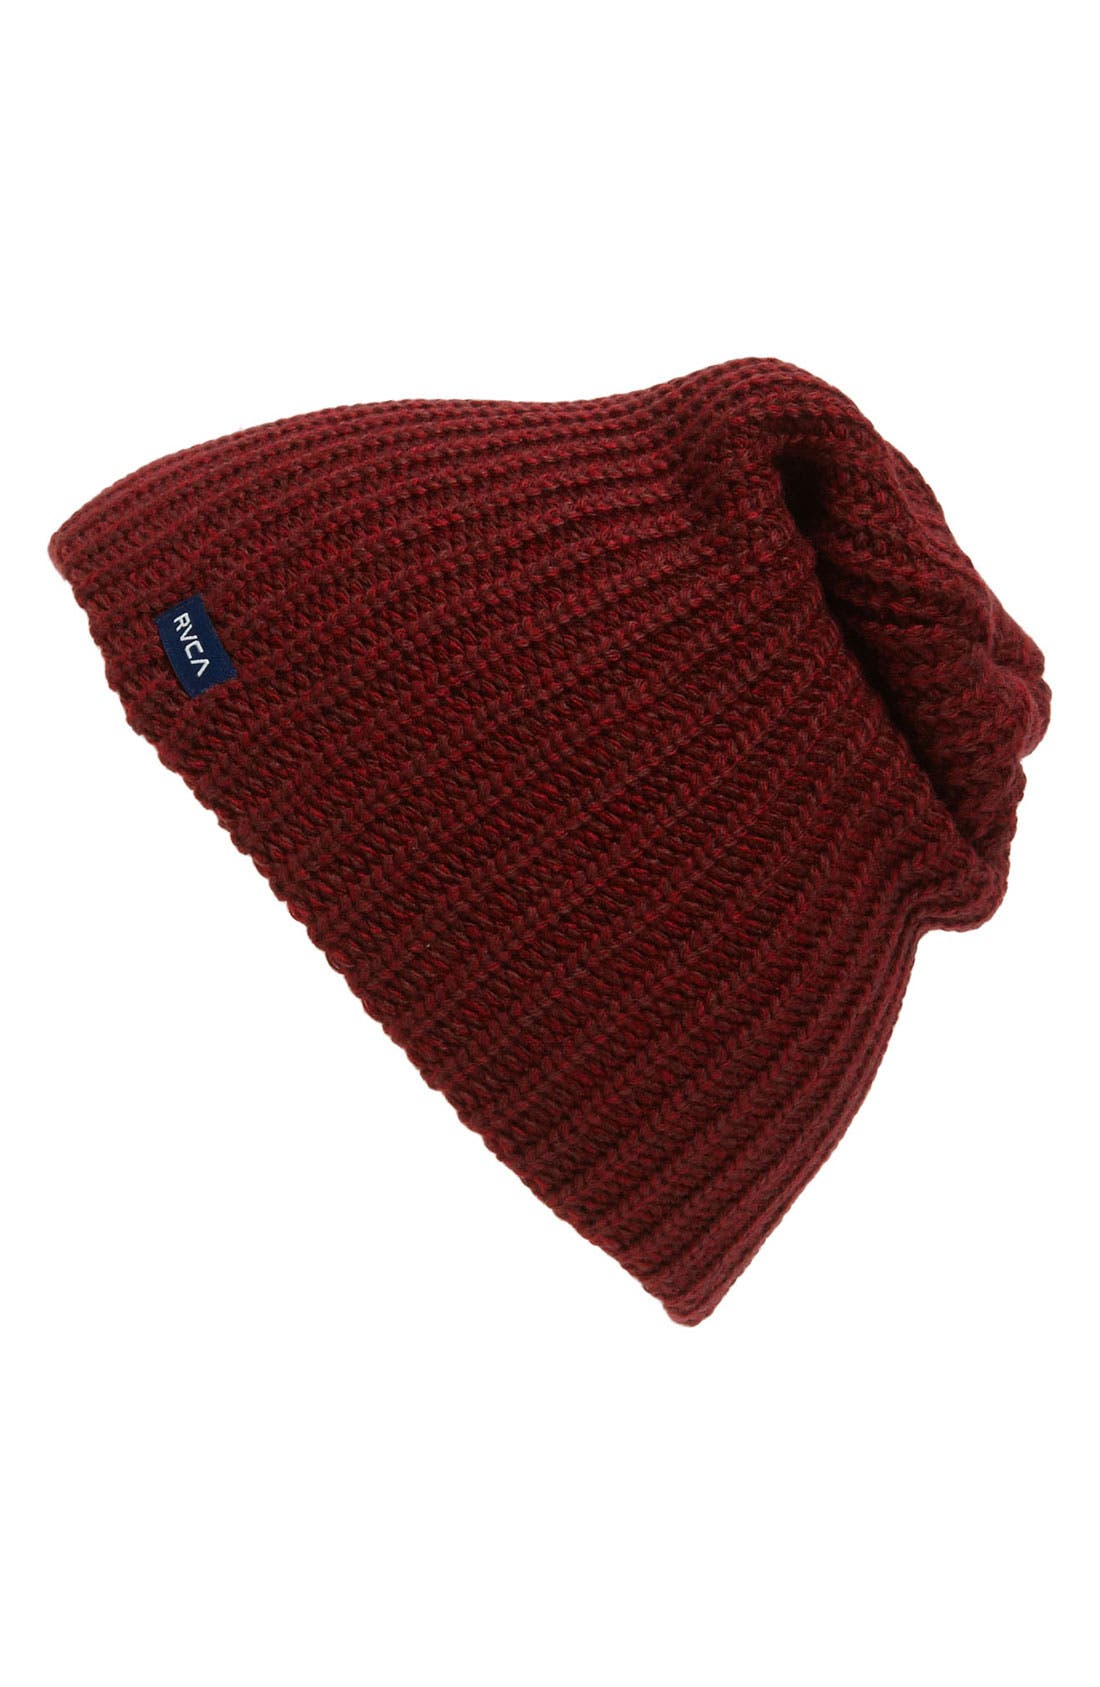 Alternate Image 1 Selected - RVCA 'Based' Knit Cap